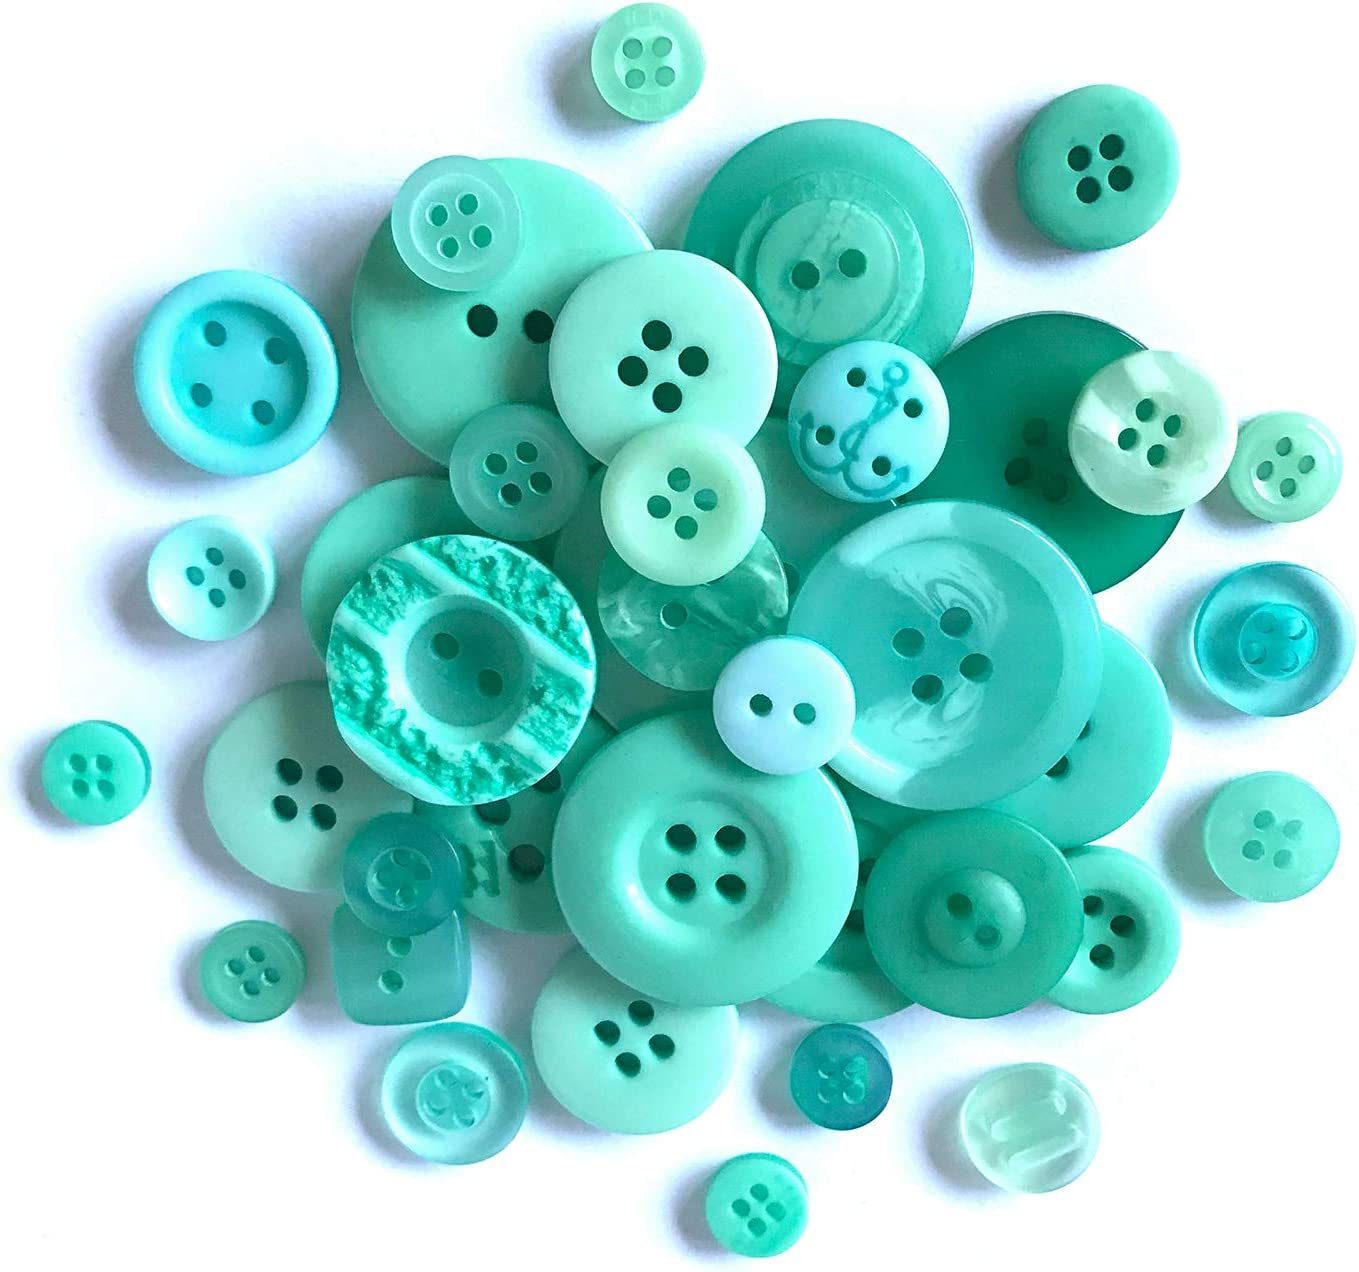 Layer Cake Button Buttons Galore Bulk Buy Craft /& Sewing Buttons